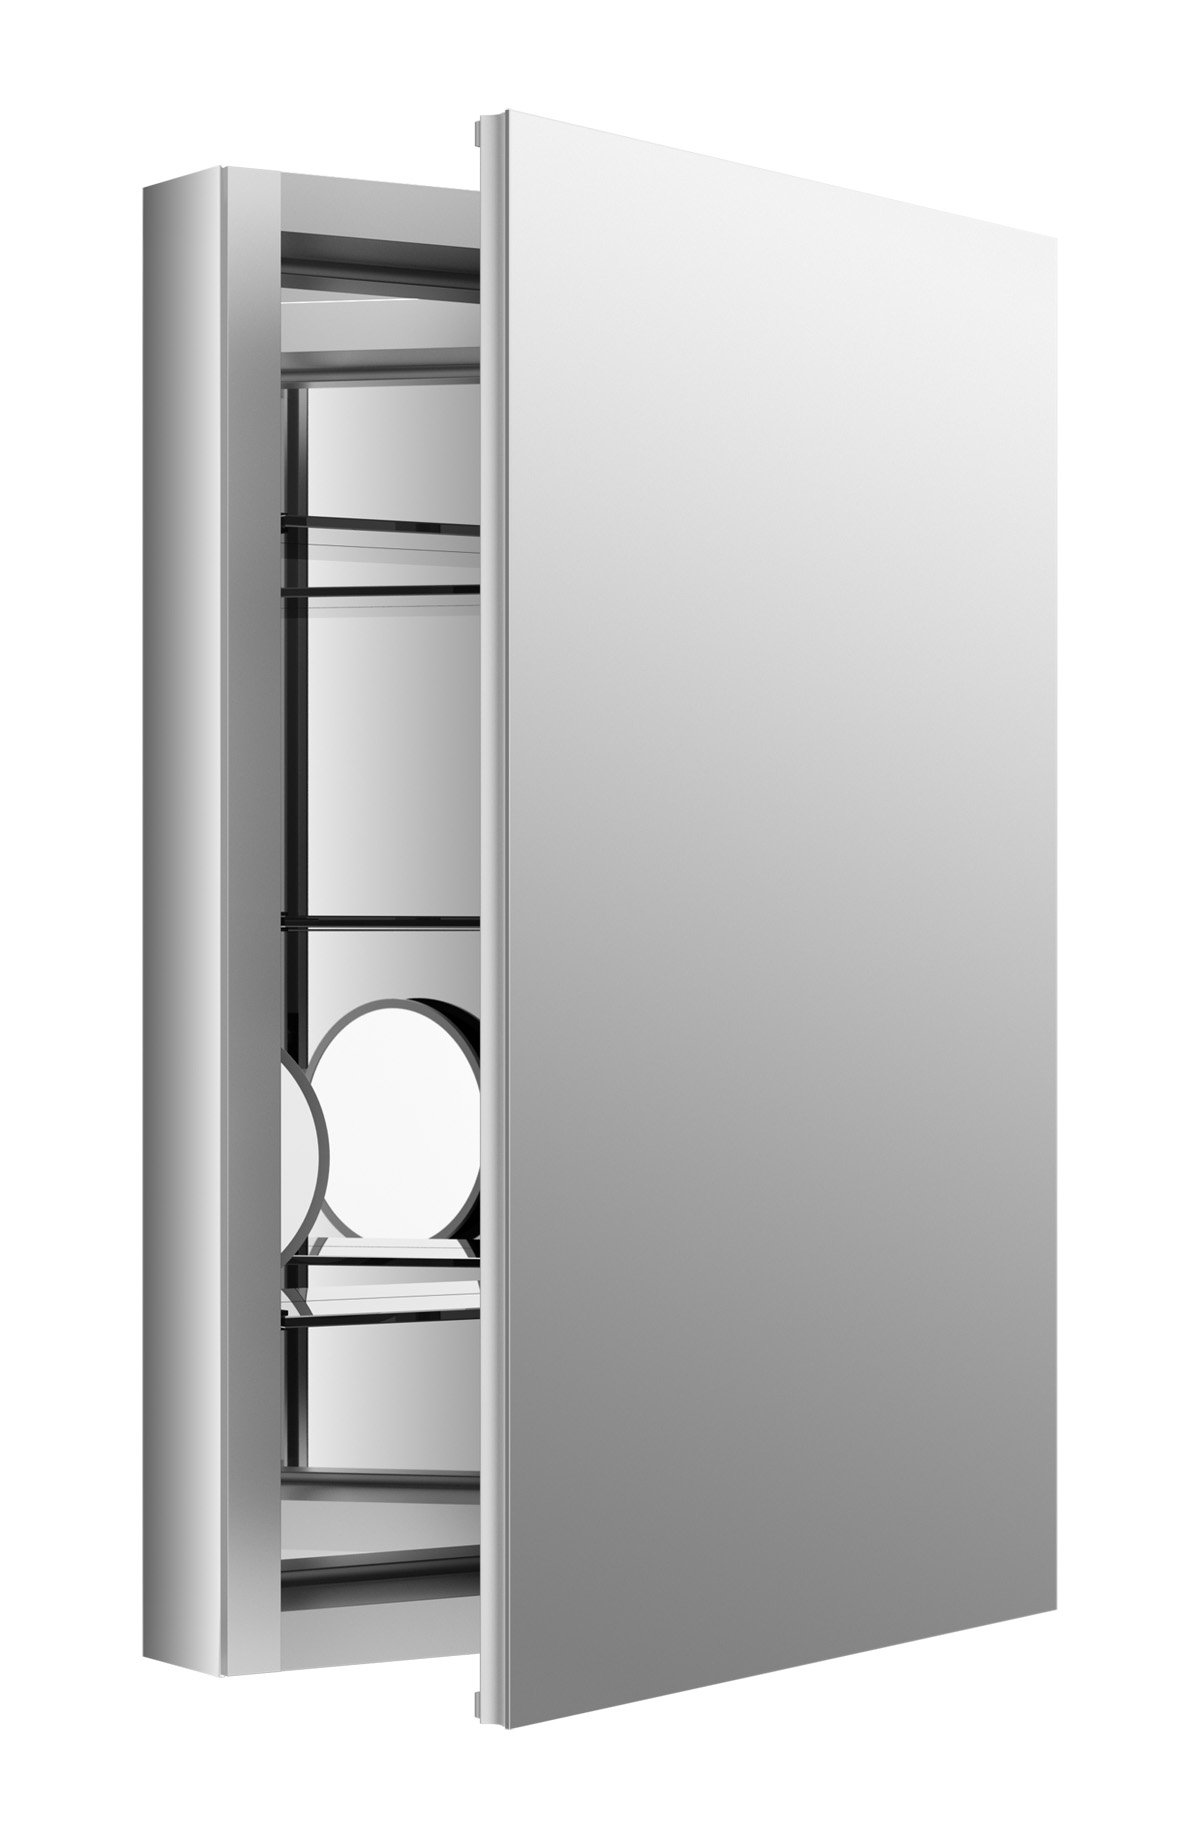 KOHLER 99003-SCF-NA Verdera Aluminum Medicine Cabinet with Adjustable Flip-Out flat Mirror, 20 inch W x 30 inch H Verdera Medicine Cabinet with Adjustable Flip-Out flat Mirror, 20 inch W x 30 inch H